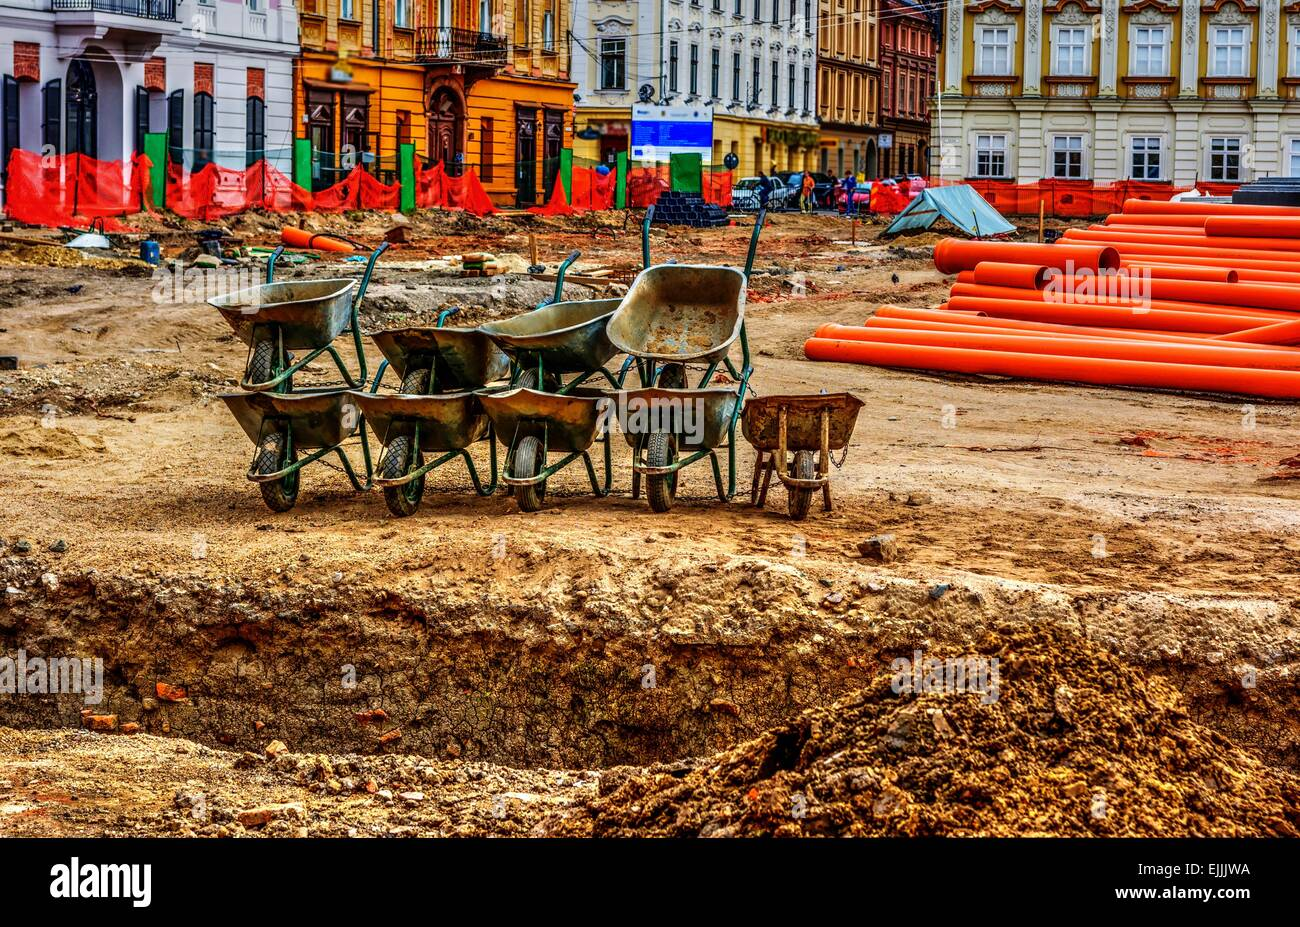 Construction site with wheelbarrows in Timisoara, Romania. - Stock Image